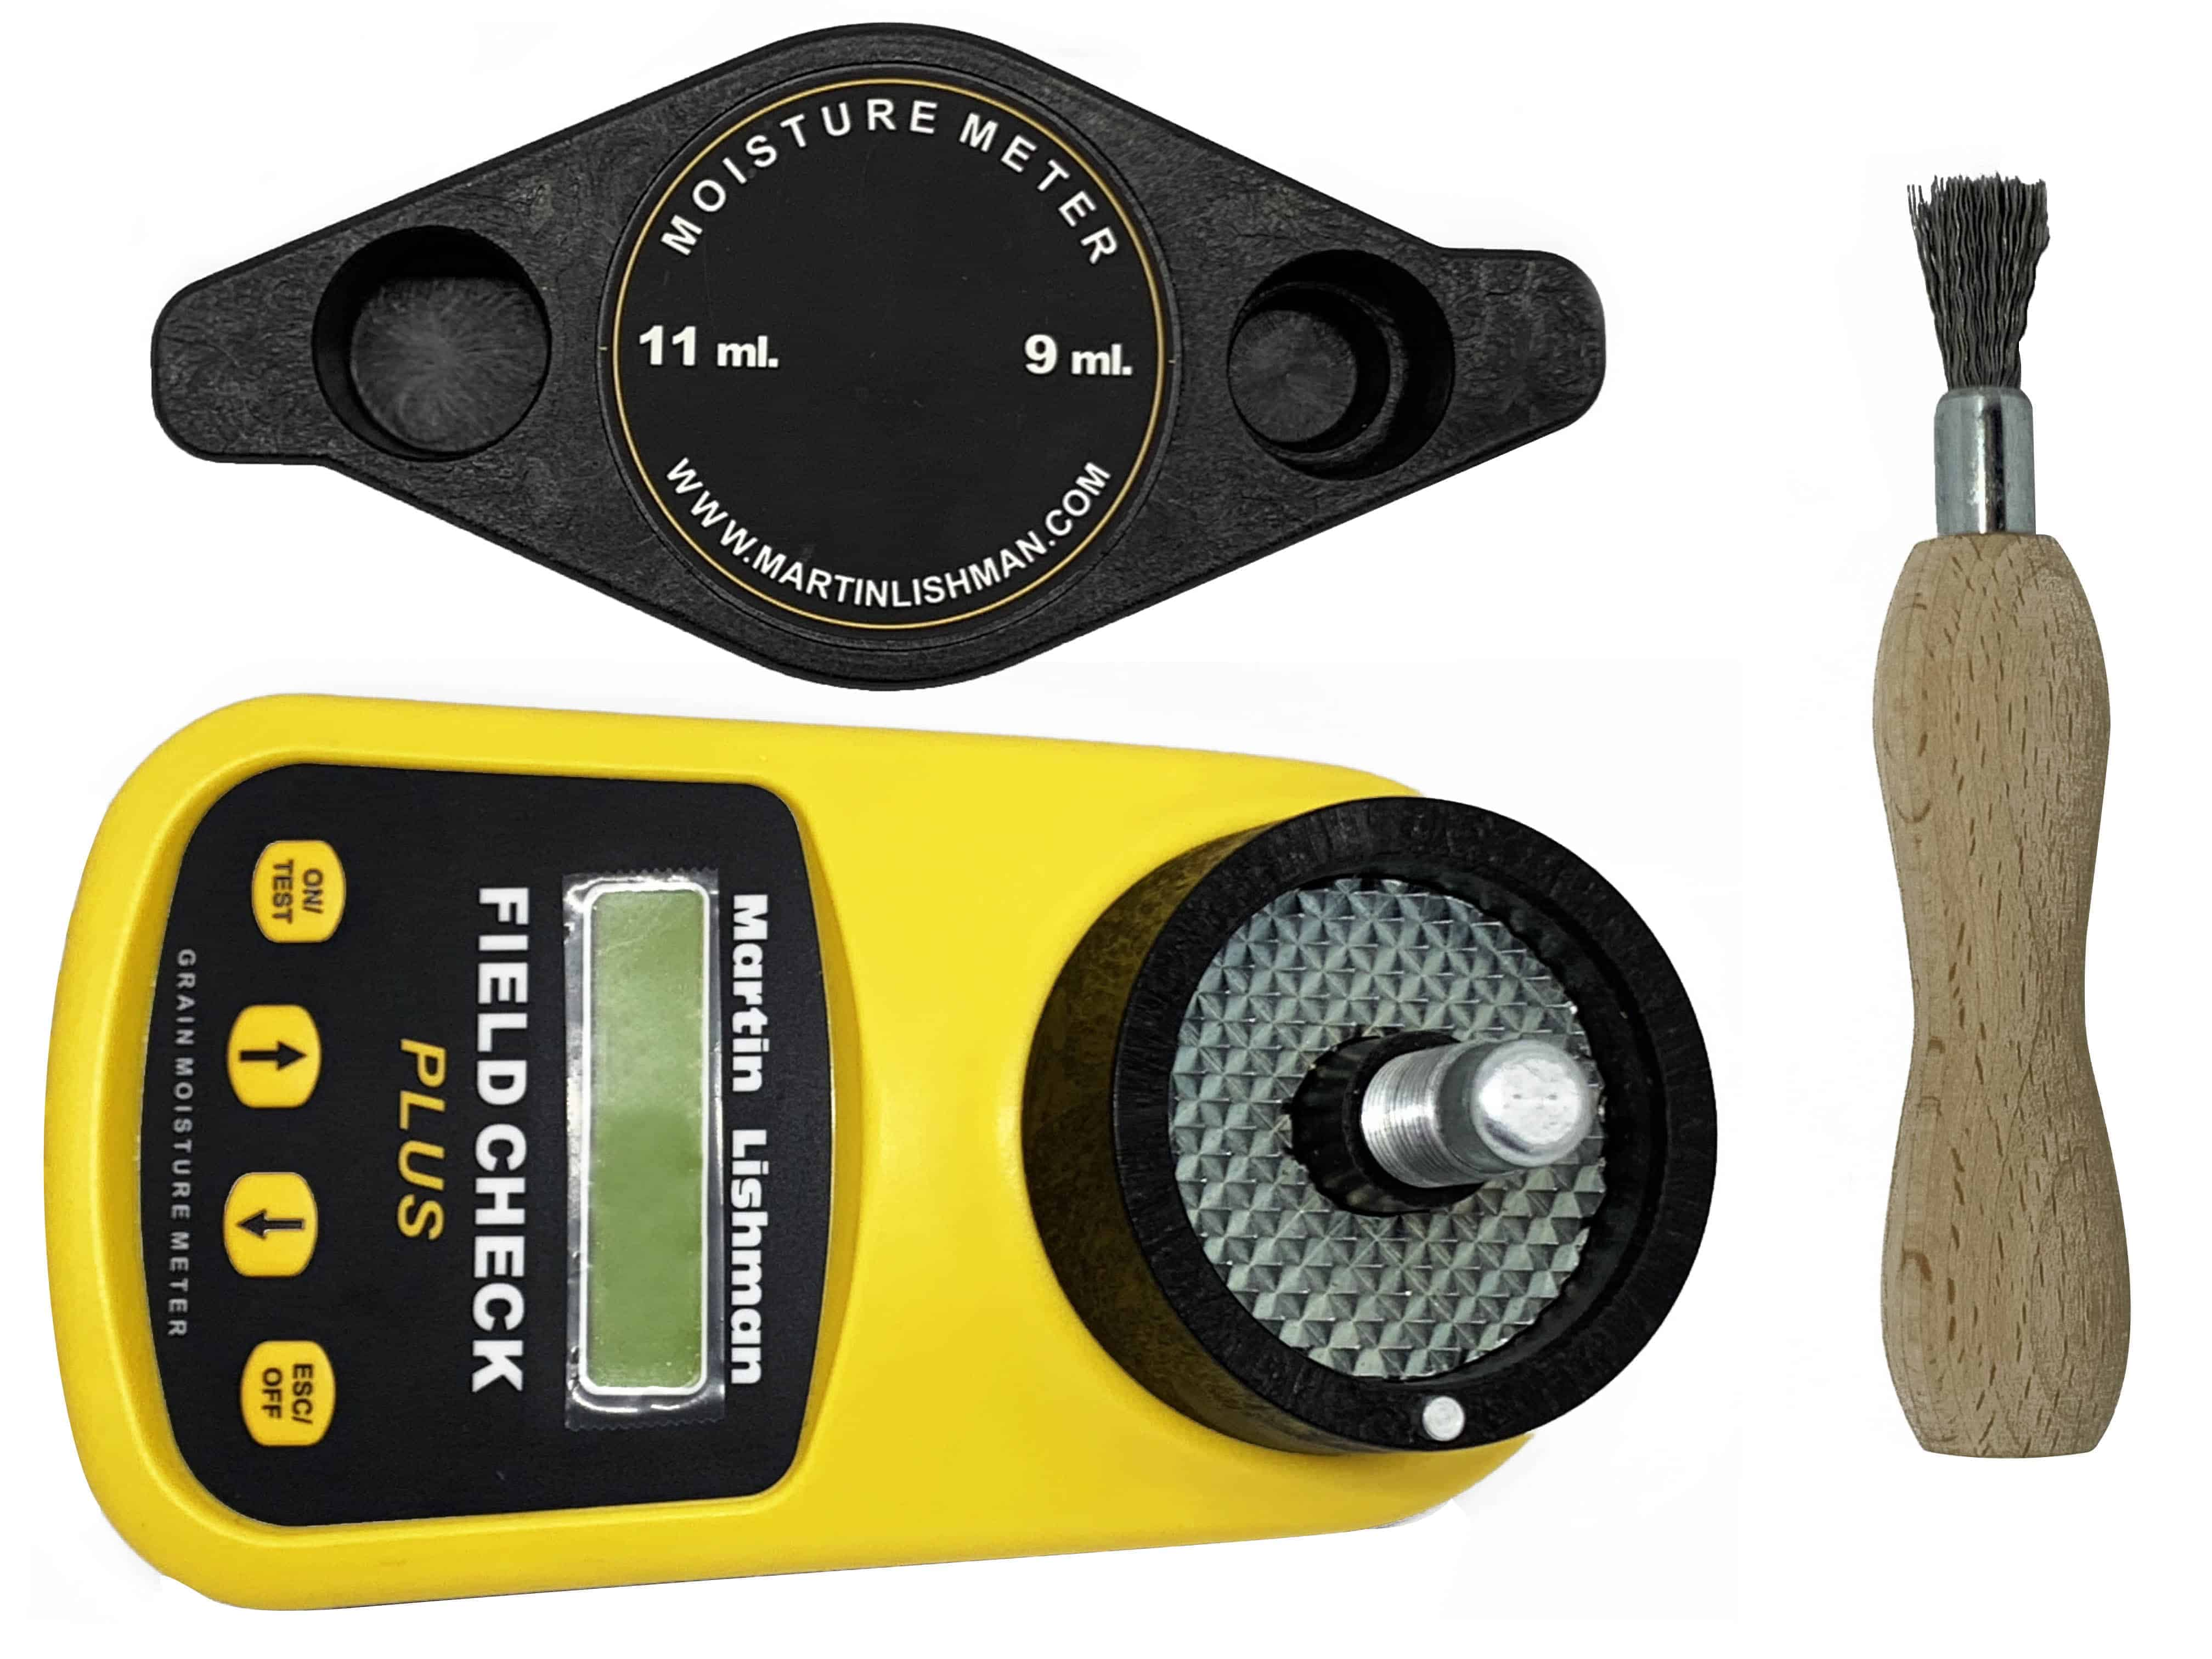 The Martin Lishman field check moisture meter comes with everything needed